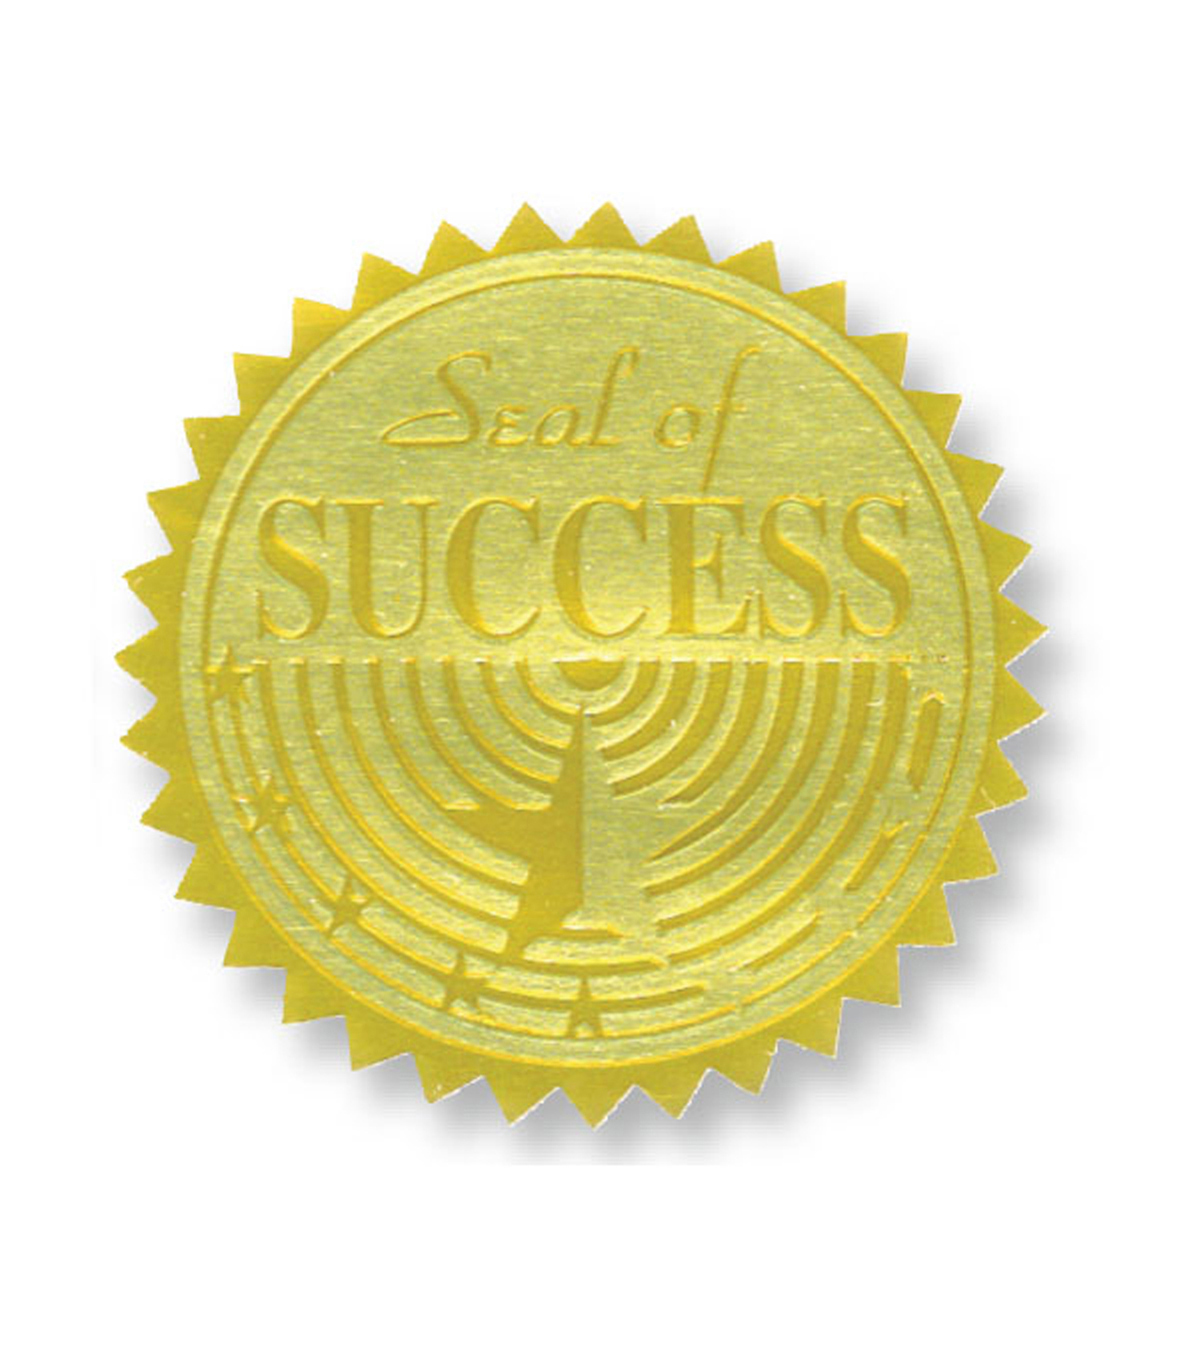 Hayes Gold Foil Embossed Seals, Seal of Success, 54 Per Pack, 3 Packs